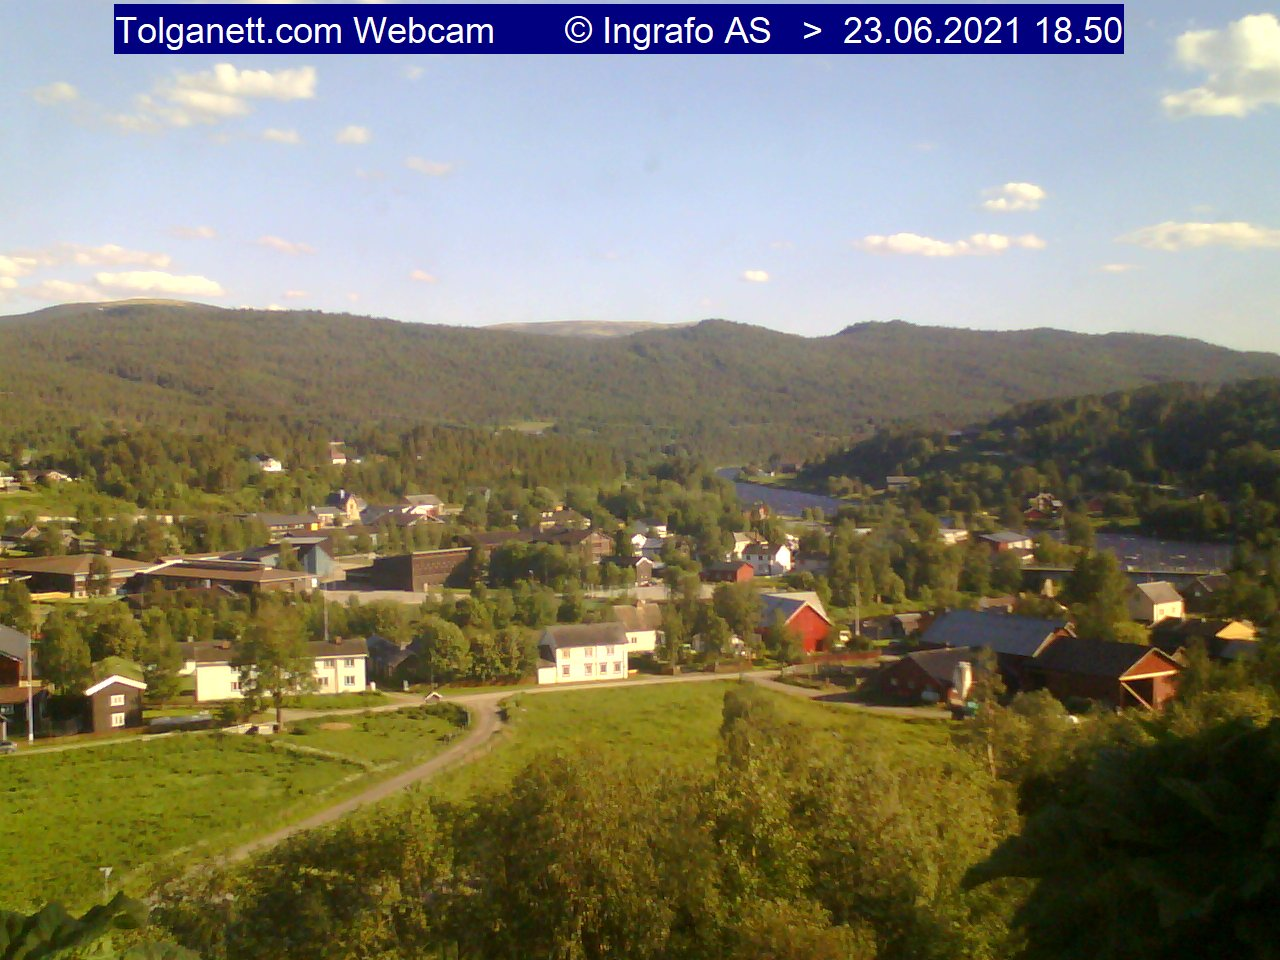 Webcam: Village Center of Tolga, located 35 km soud of Bergstaden Røros - Norvegia